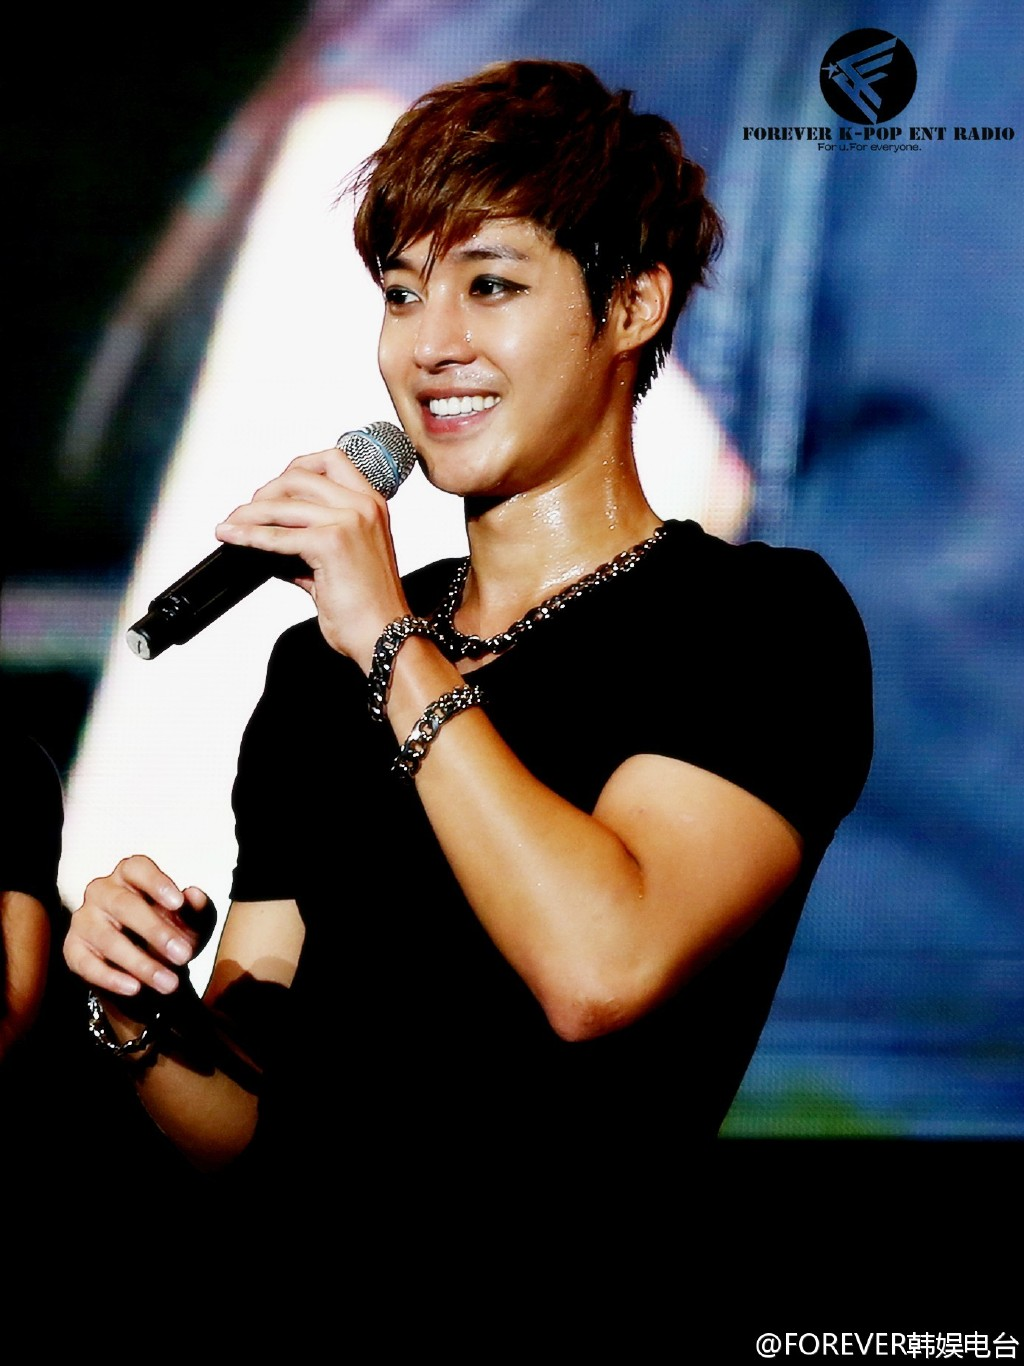 [FOREVER韩娱电台 Photo] Kim Hyun Joong 2014 Phantasm World Tour in Guangzhou, China [14.08.30]